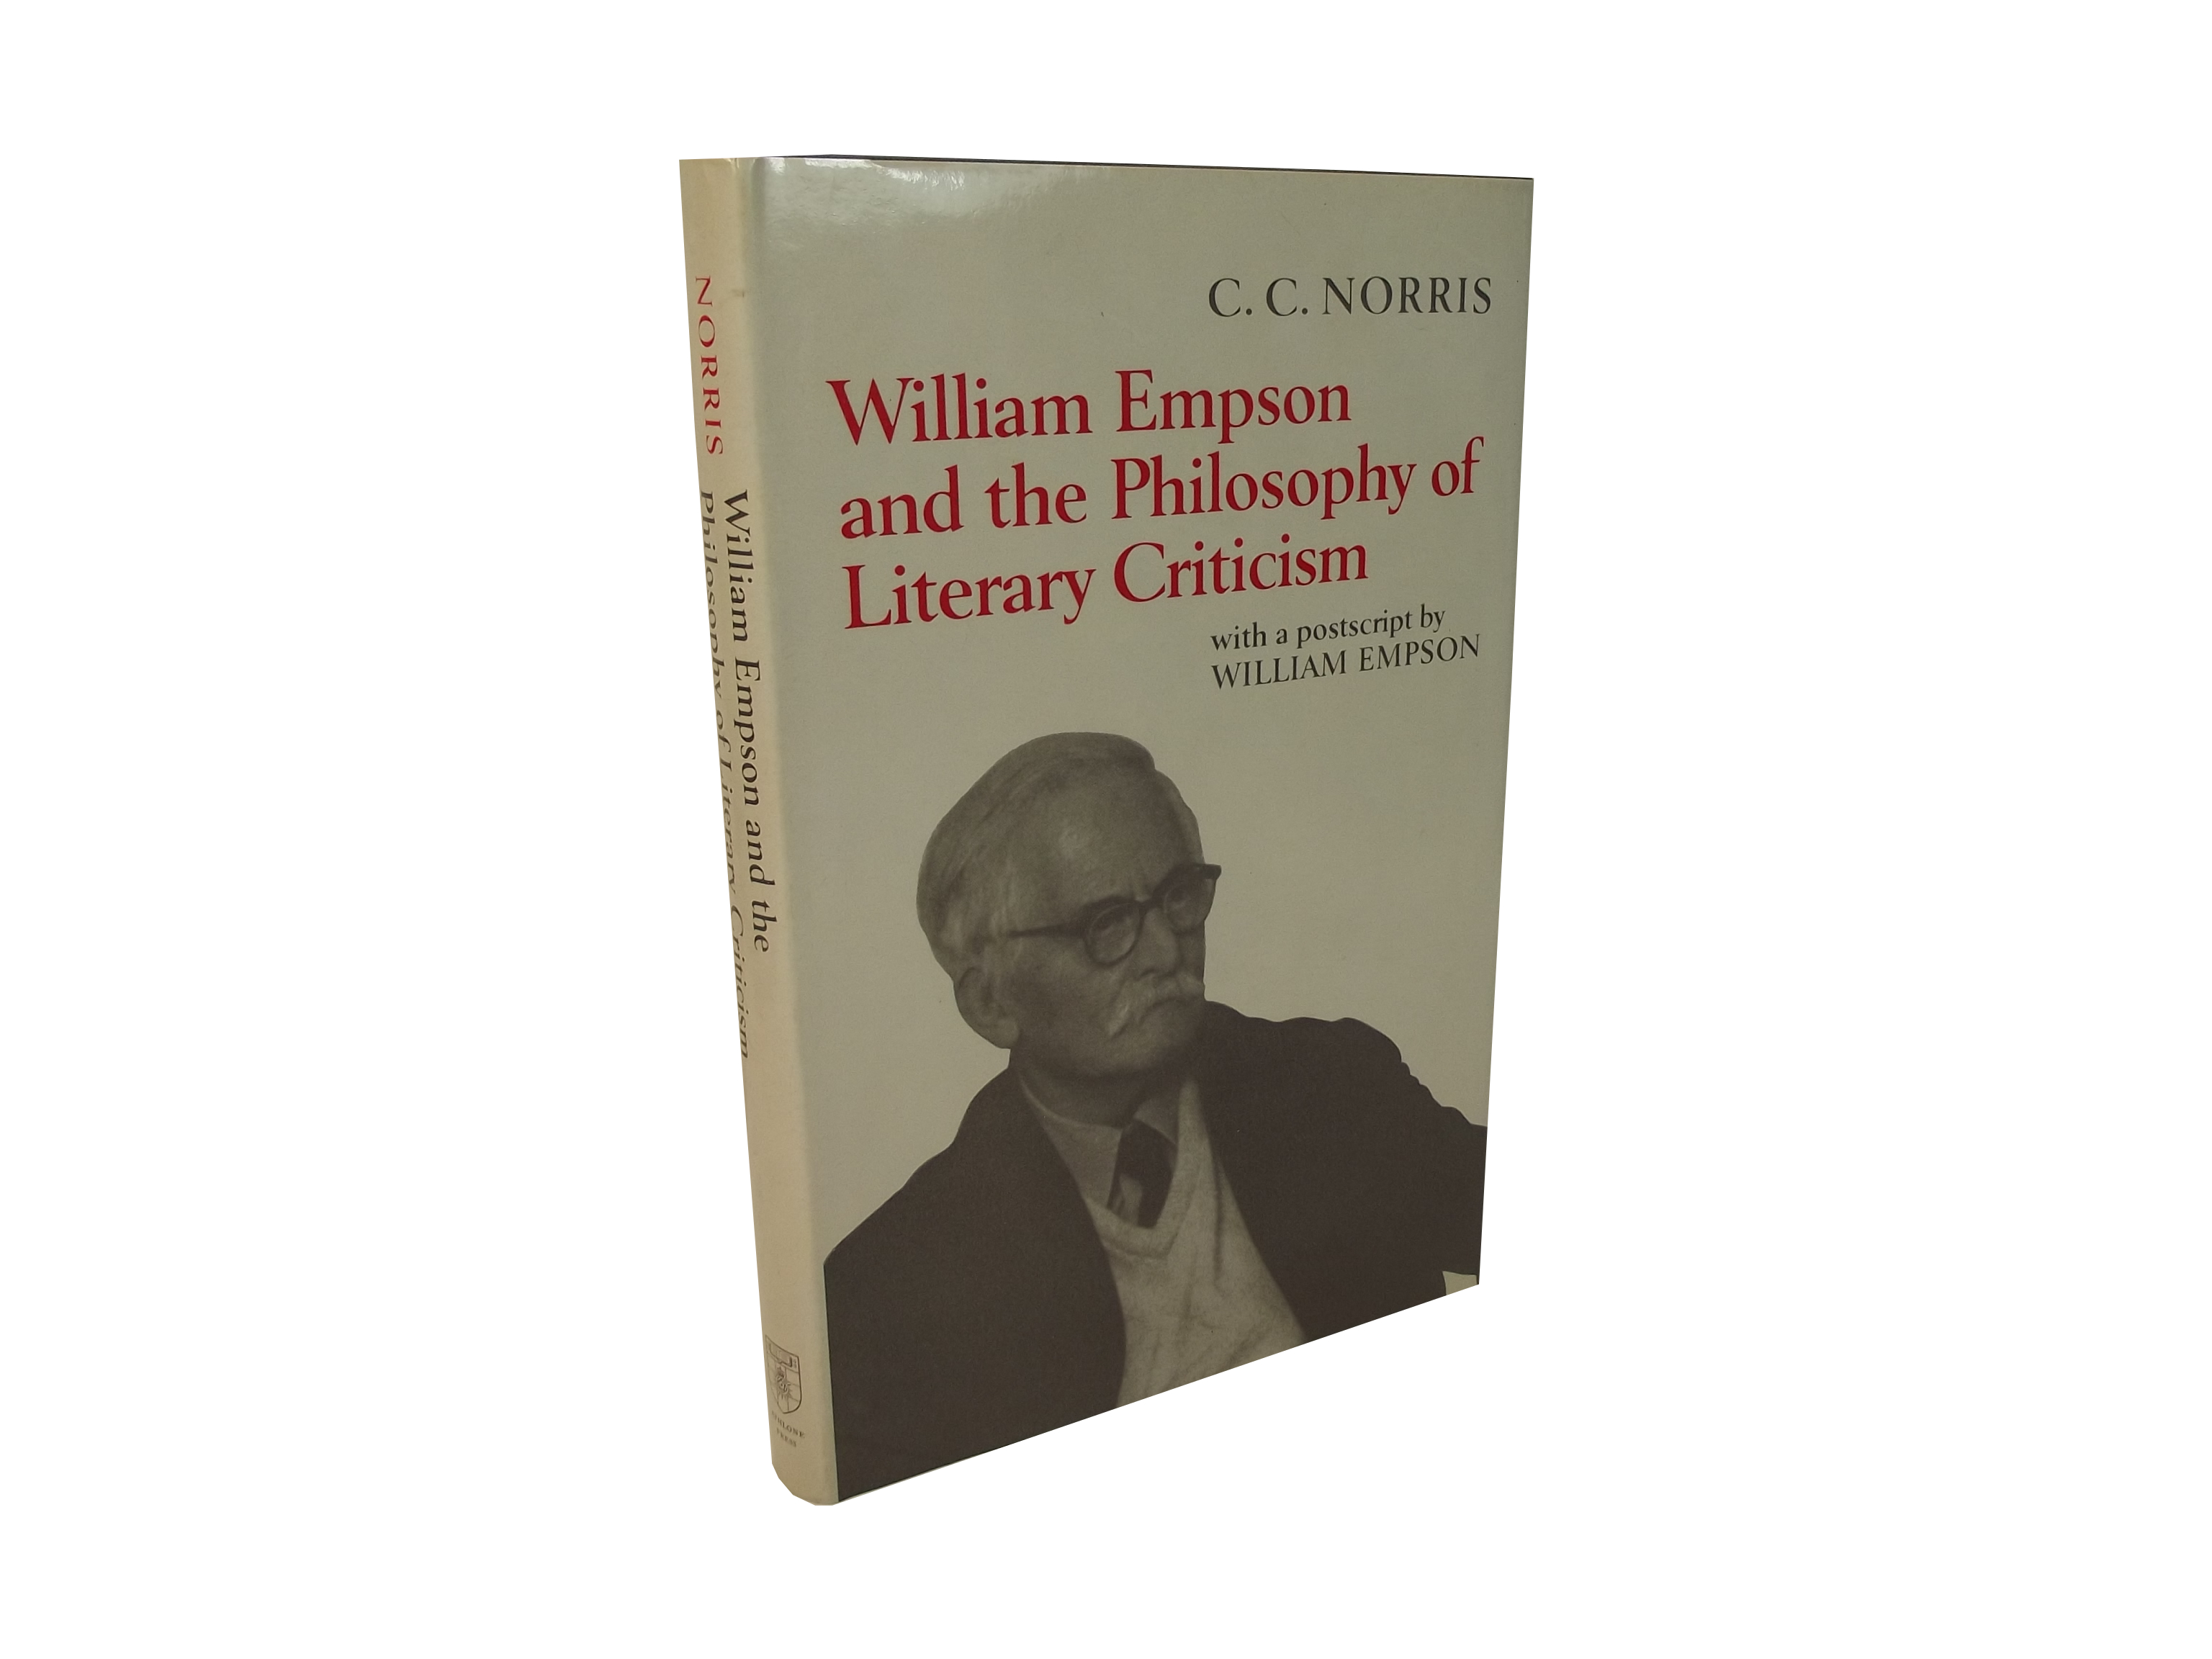 William Empson and the Philosophy of Literary Criticism